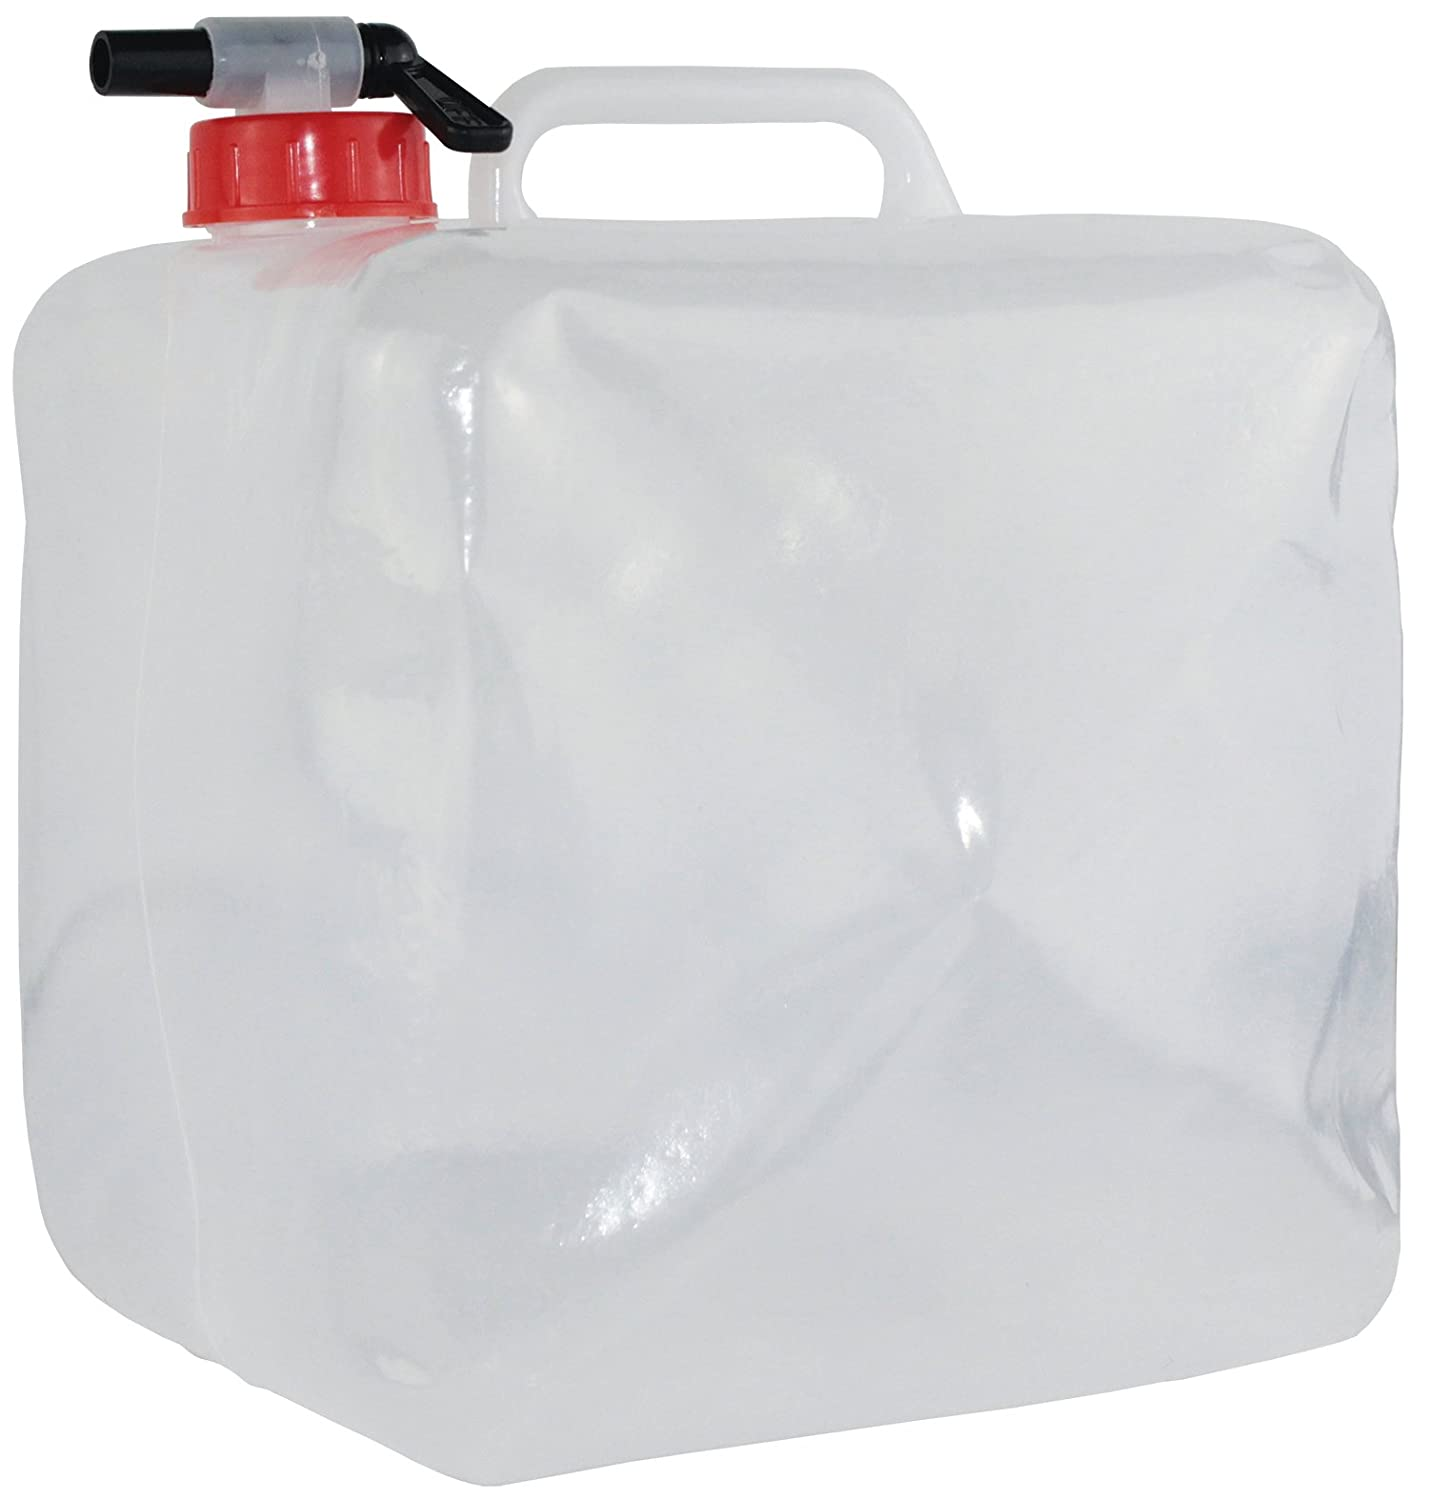 Yellowstone  Pack Away  Outdoor  Water Carrier available in Multicolore 15 Litres